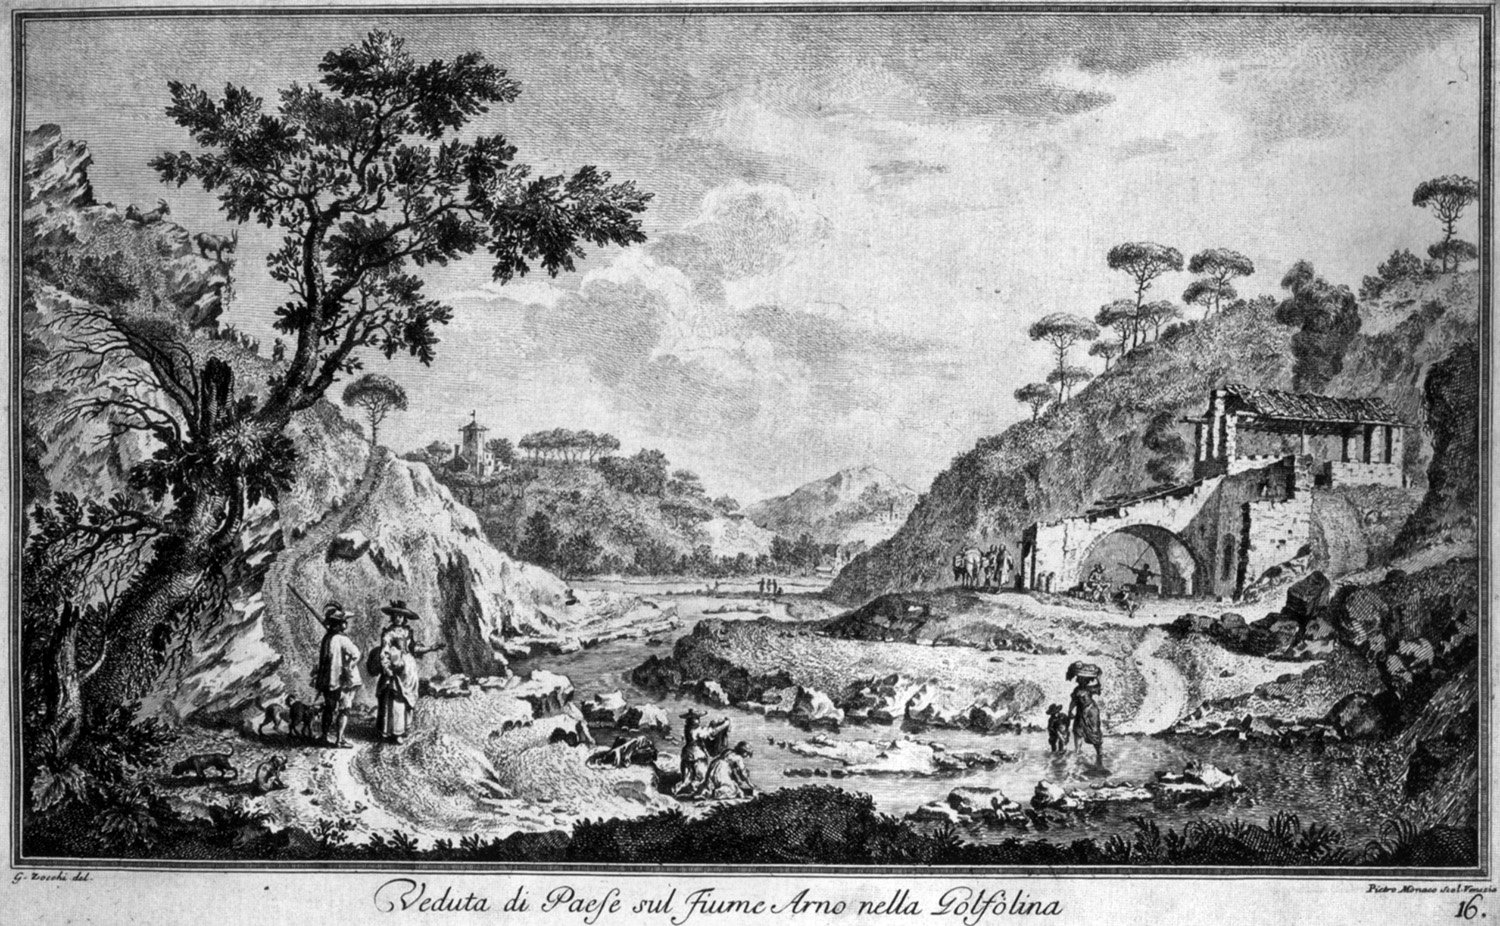 The Gonfolina canyon, engraving by Zocchi